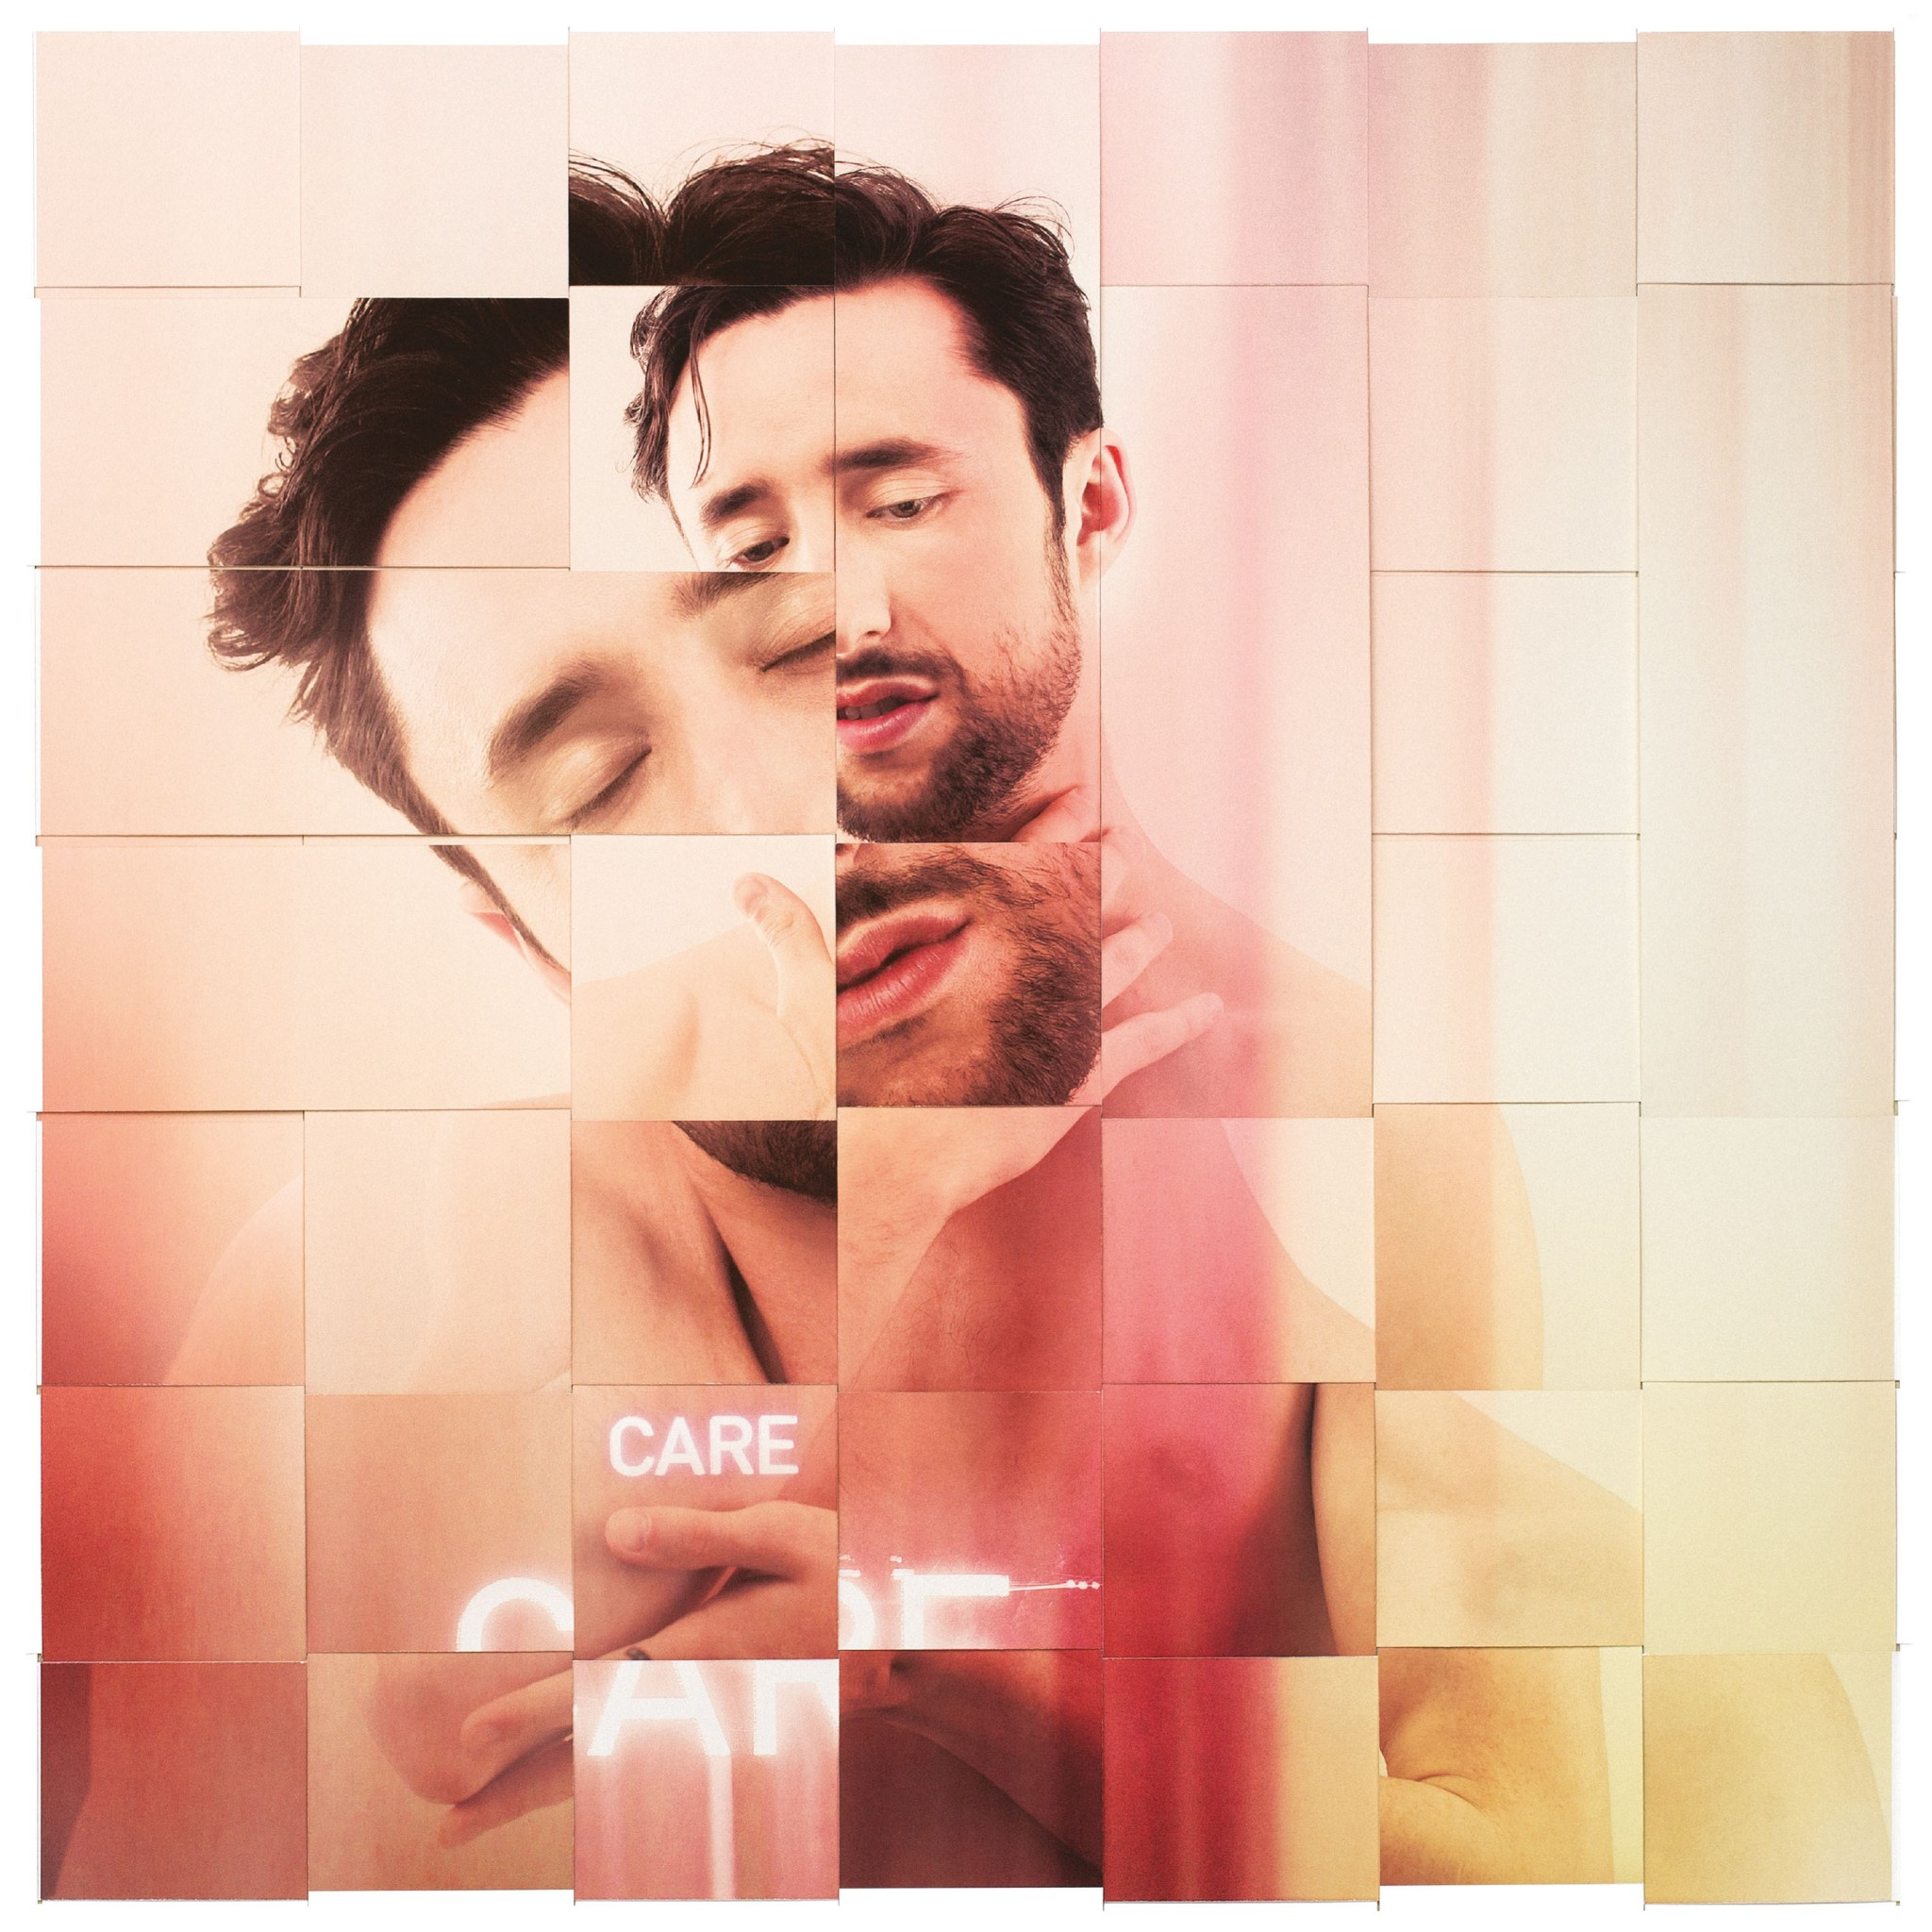 Care, album cover